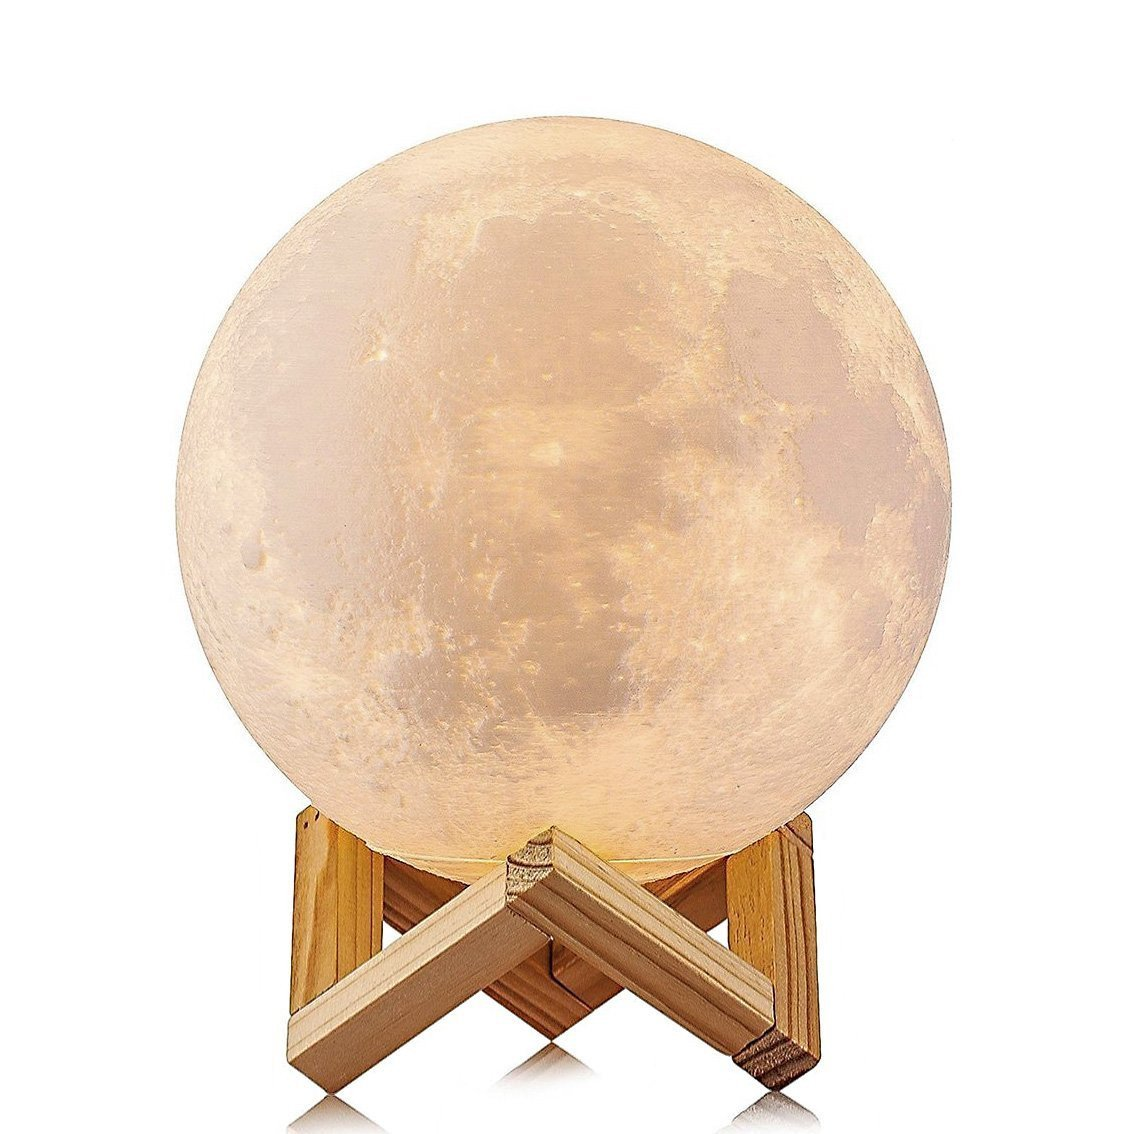 Moon Light Table Lamp 3D Printing Moon Lamp, 4.9 Inch Super Bright LED Home Decor, USB Recharge- Touch Control Brightness & 2 Colors Switch for Kids Birthday Gifts - 13 cm